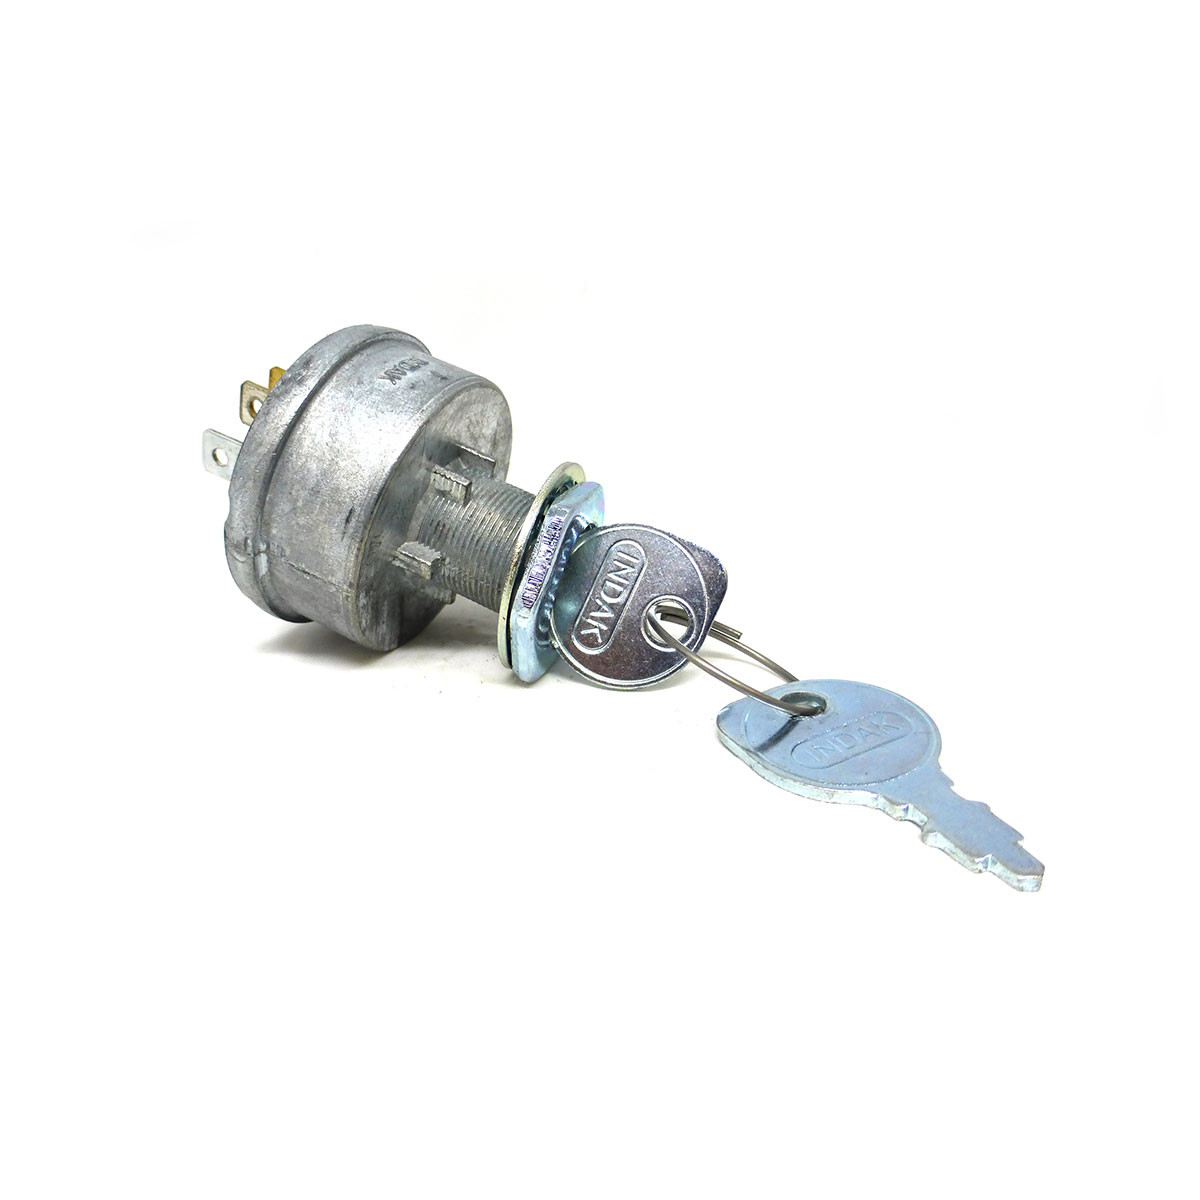 20245 20245 dixie chopper standard ignition switch dixie chopper wiring diagram at crackthecode.co